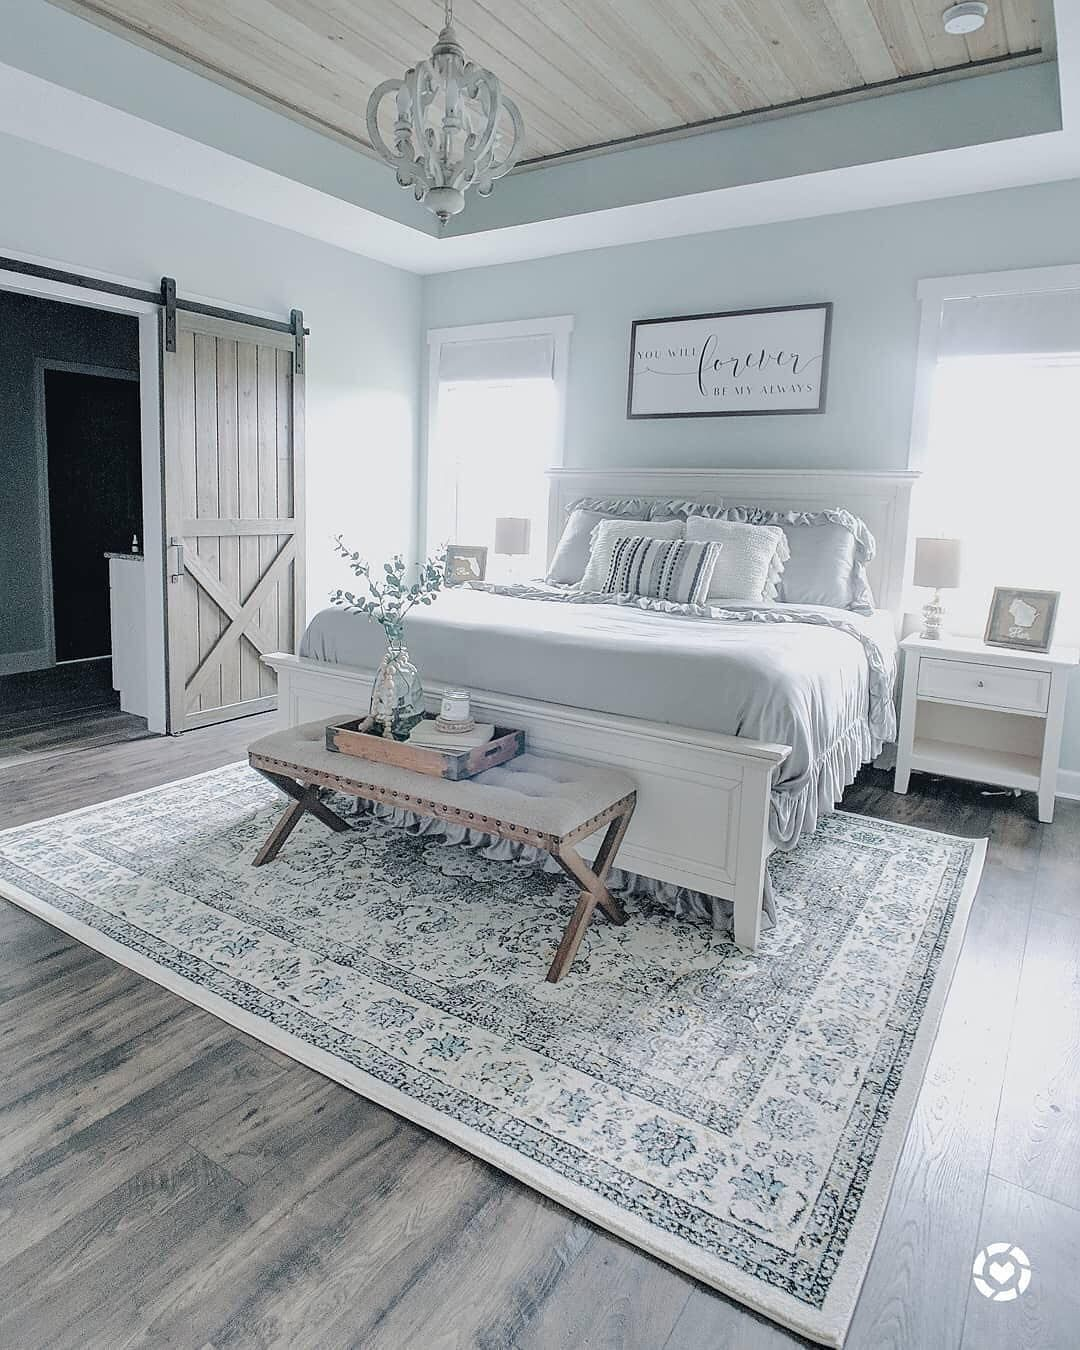 Farmhouse Fanatics On Instagram Comment A If You Love This Color Scheme Remingtonranchfarmh Master Bedrooms Decor Bedroom Refresh Home Bedroom